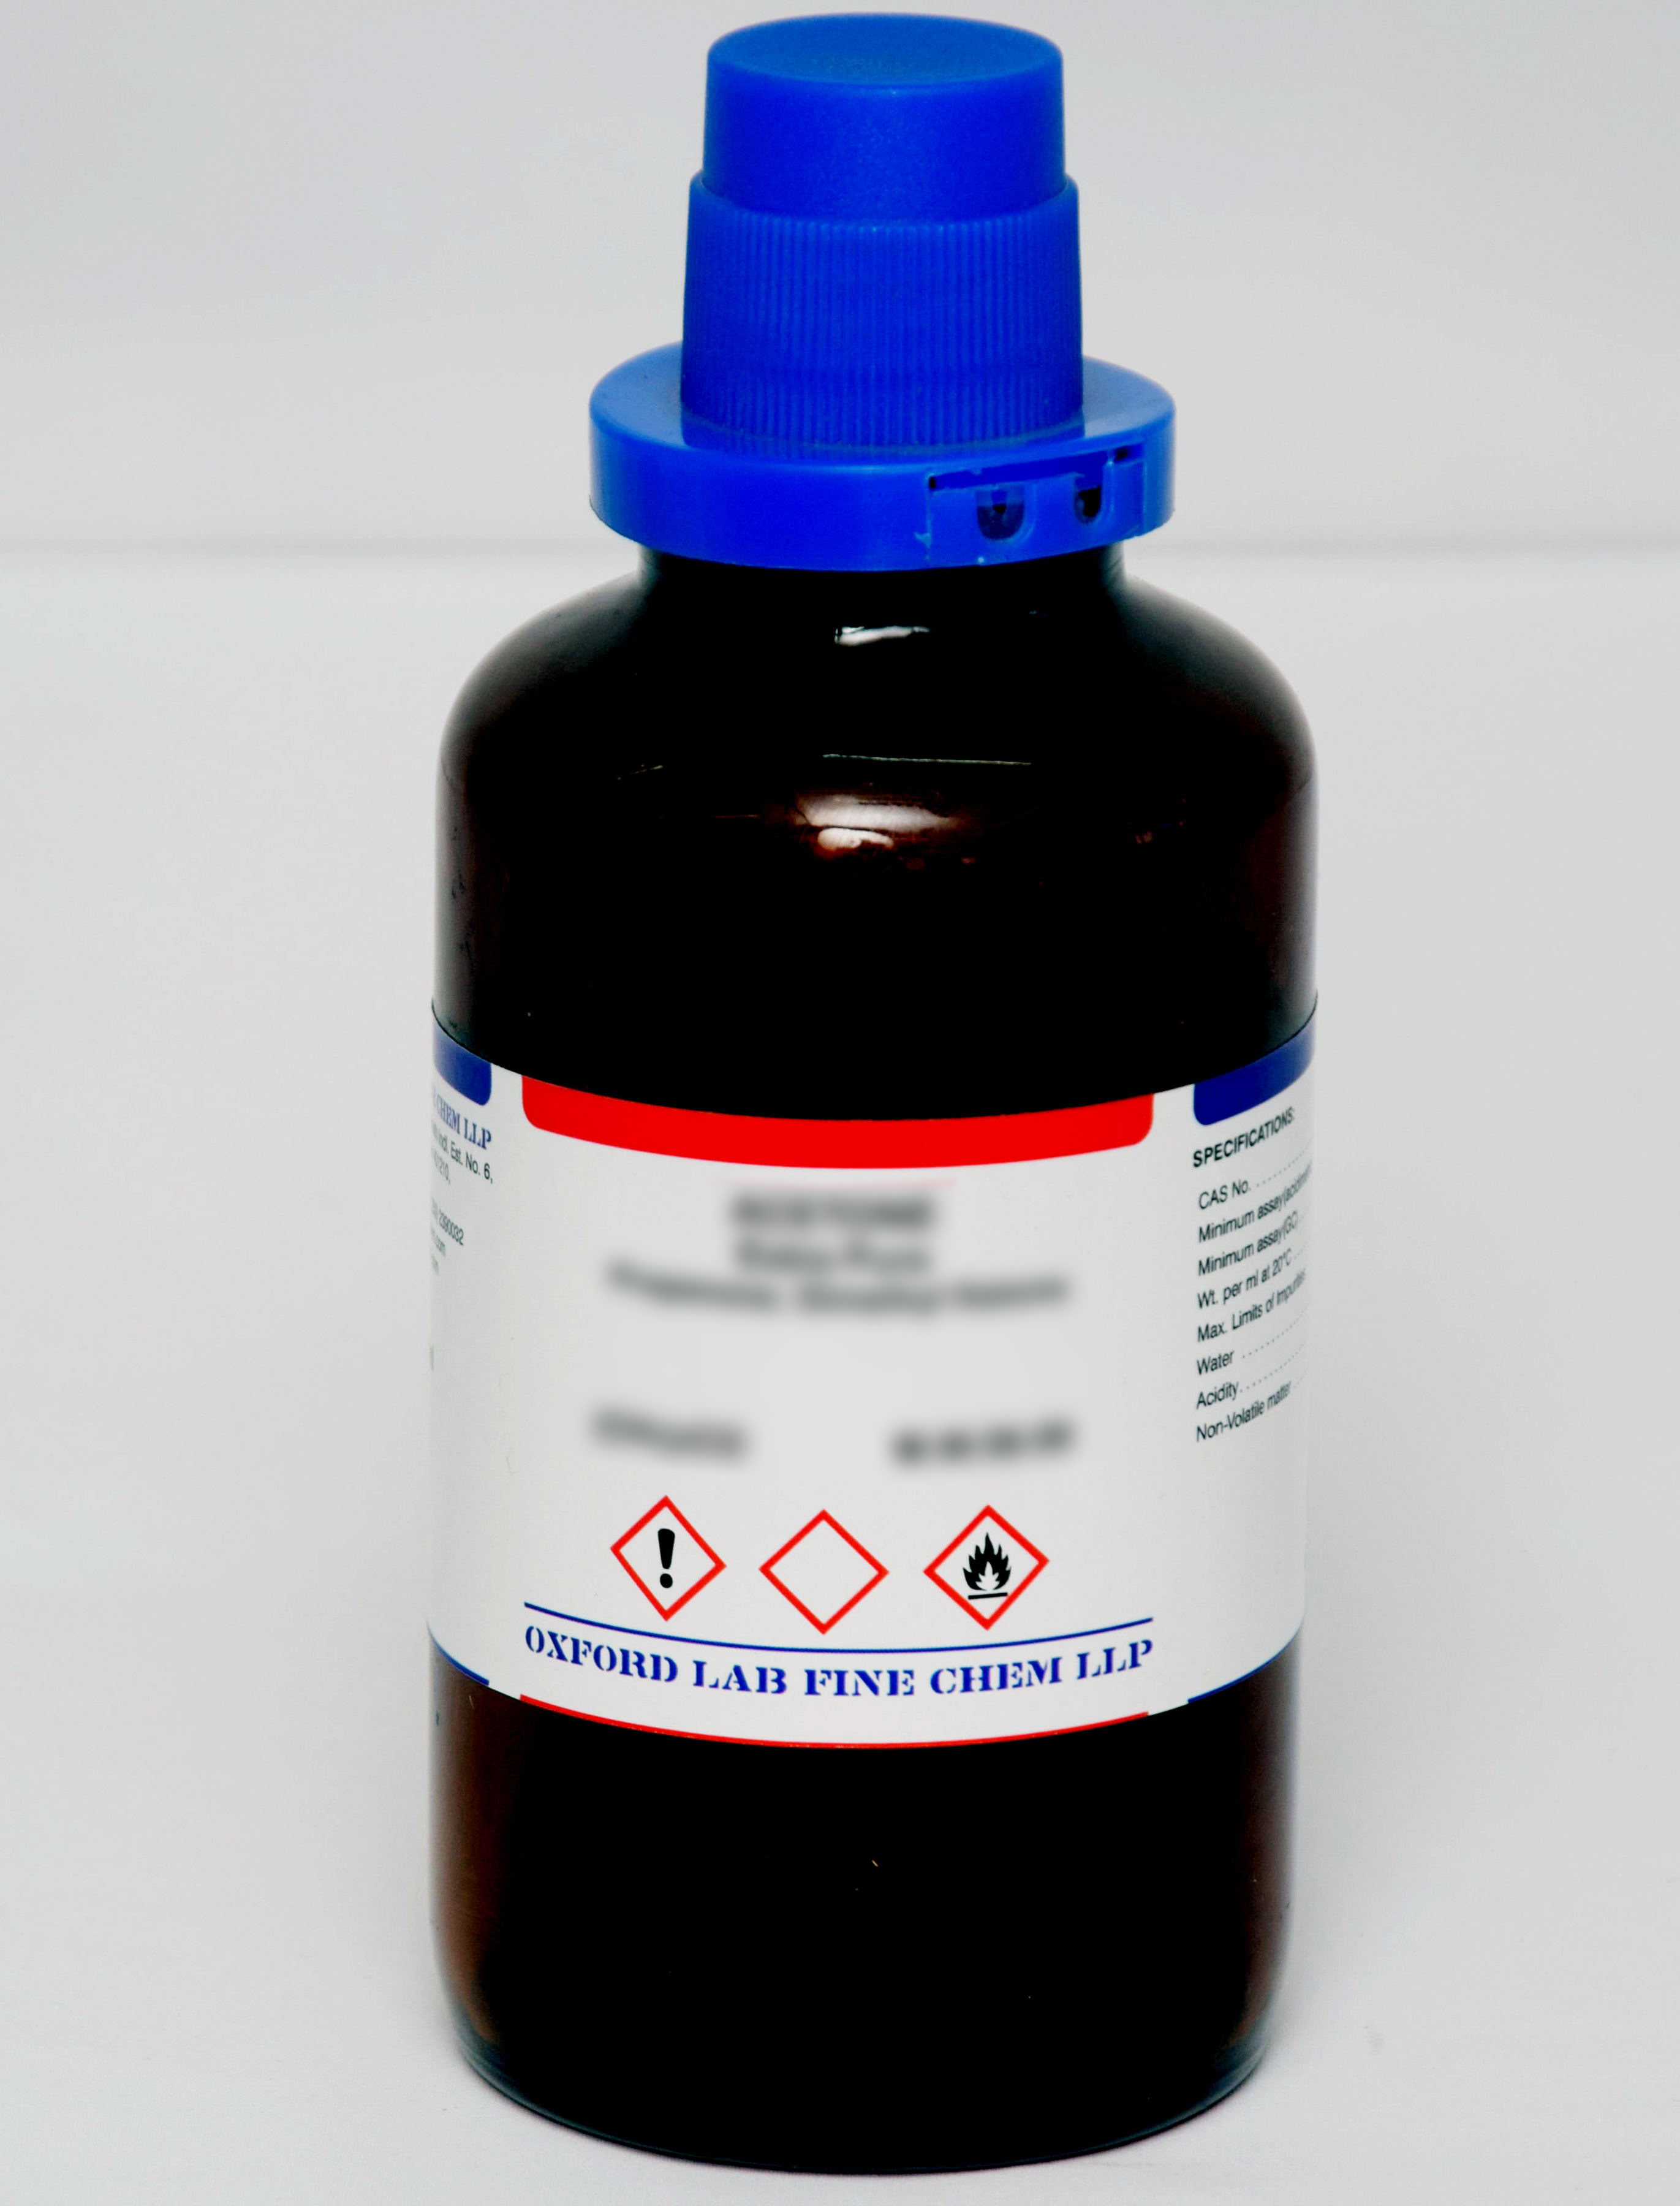 ANTIMONY AAS STANDARD SOLUTION 1000mg/Ltr. Sb In Diluted HCl